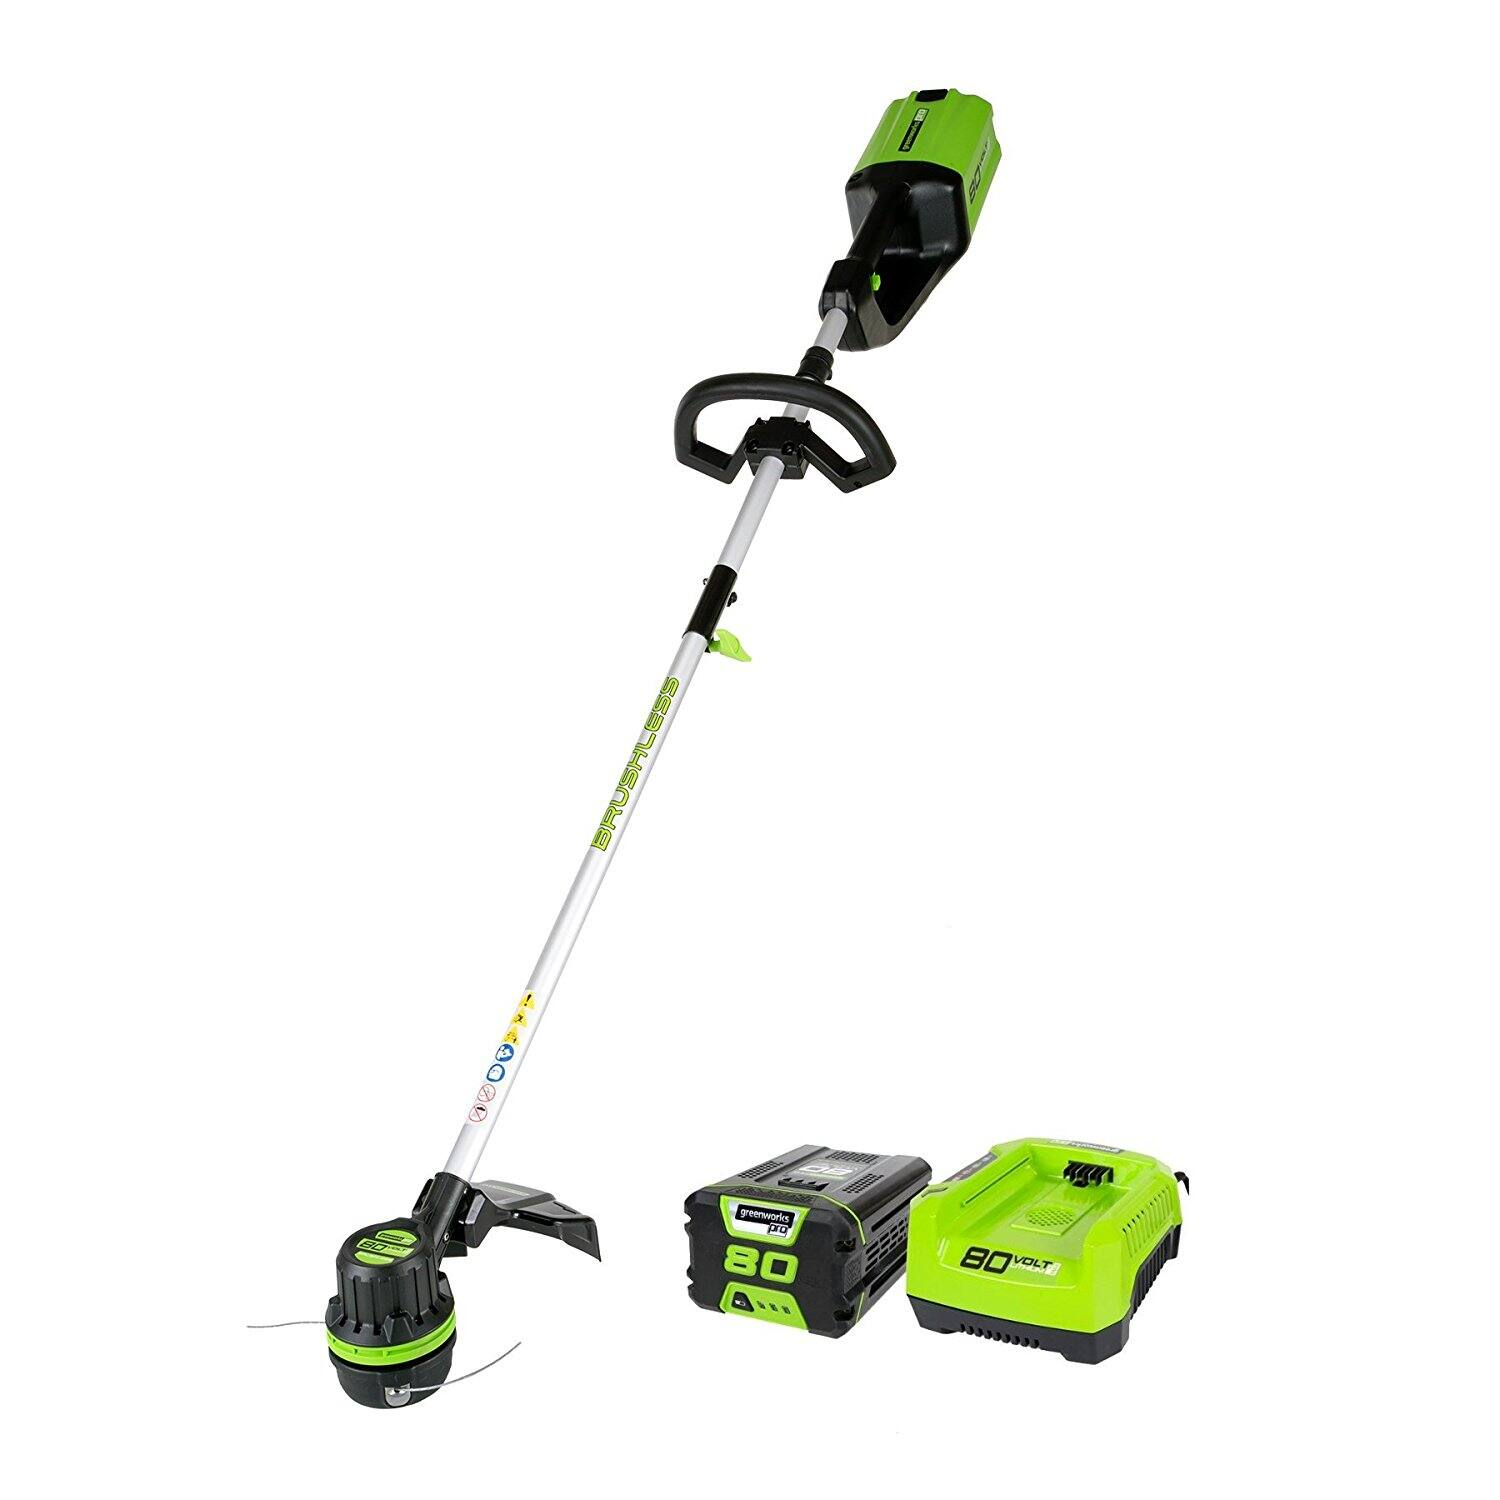 $149 - GreenWorks 80V 16-Inch Cordless String Trimmer battery & charger included